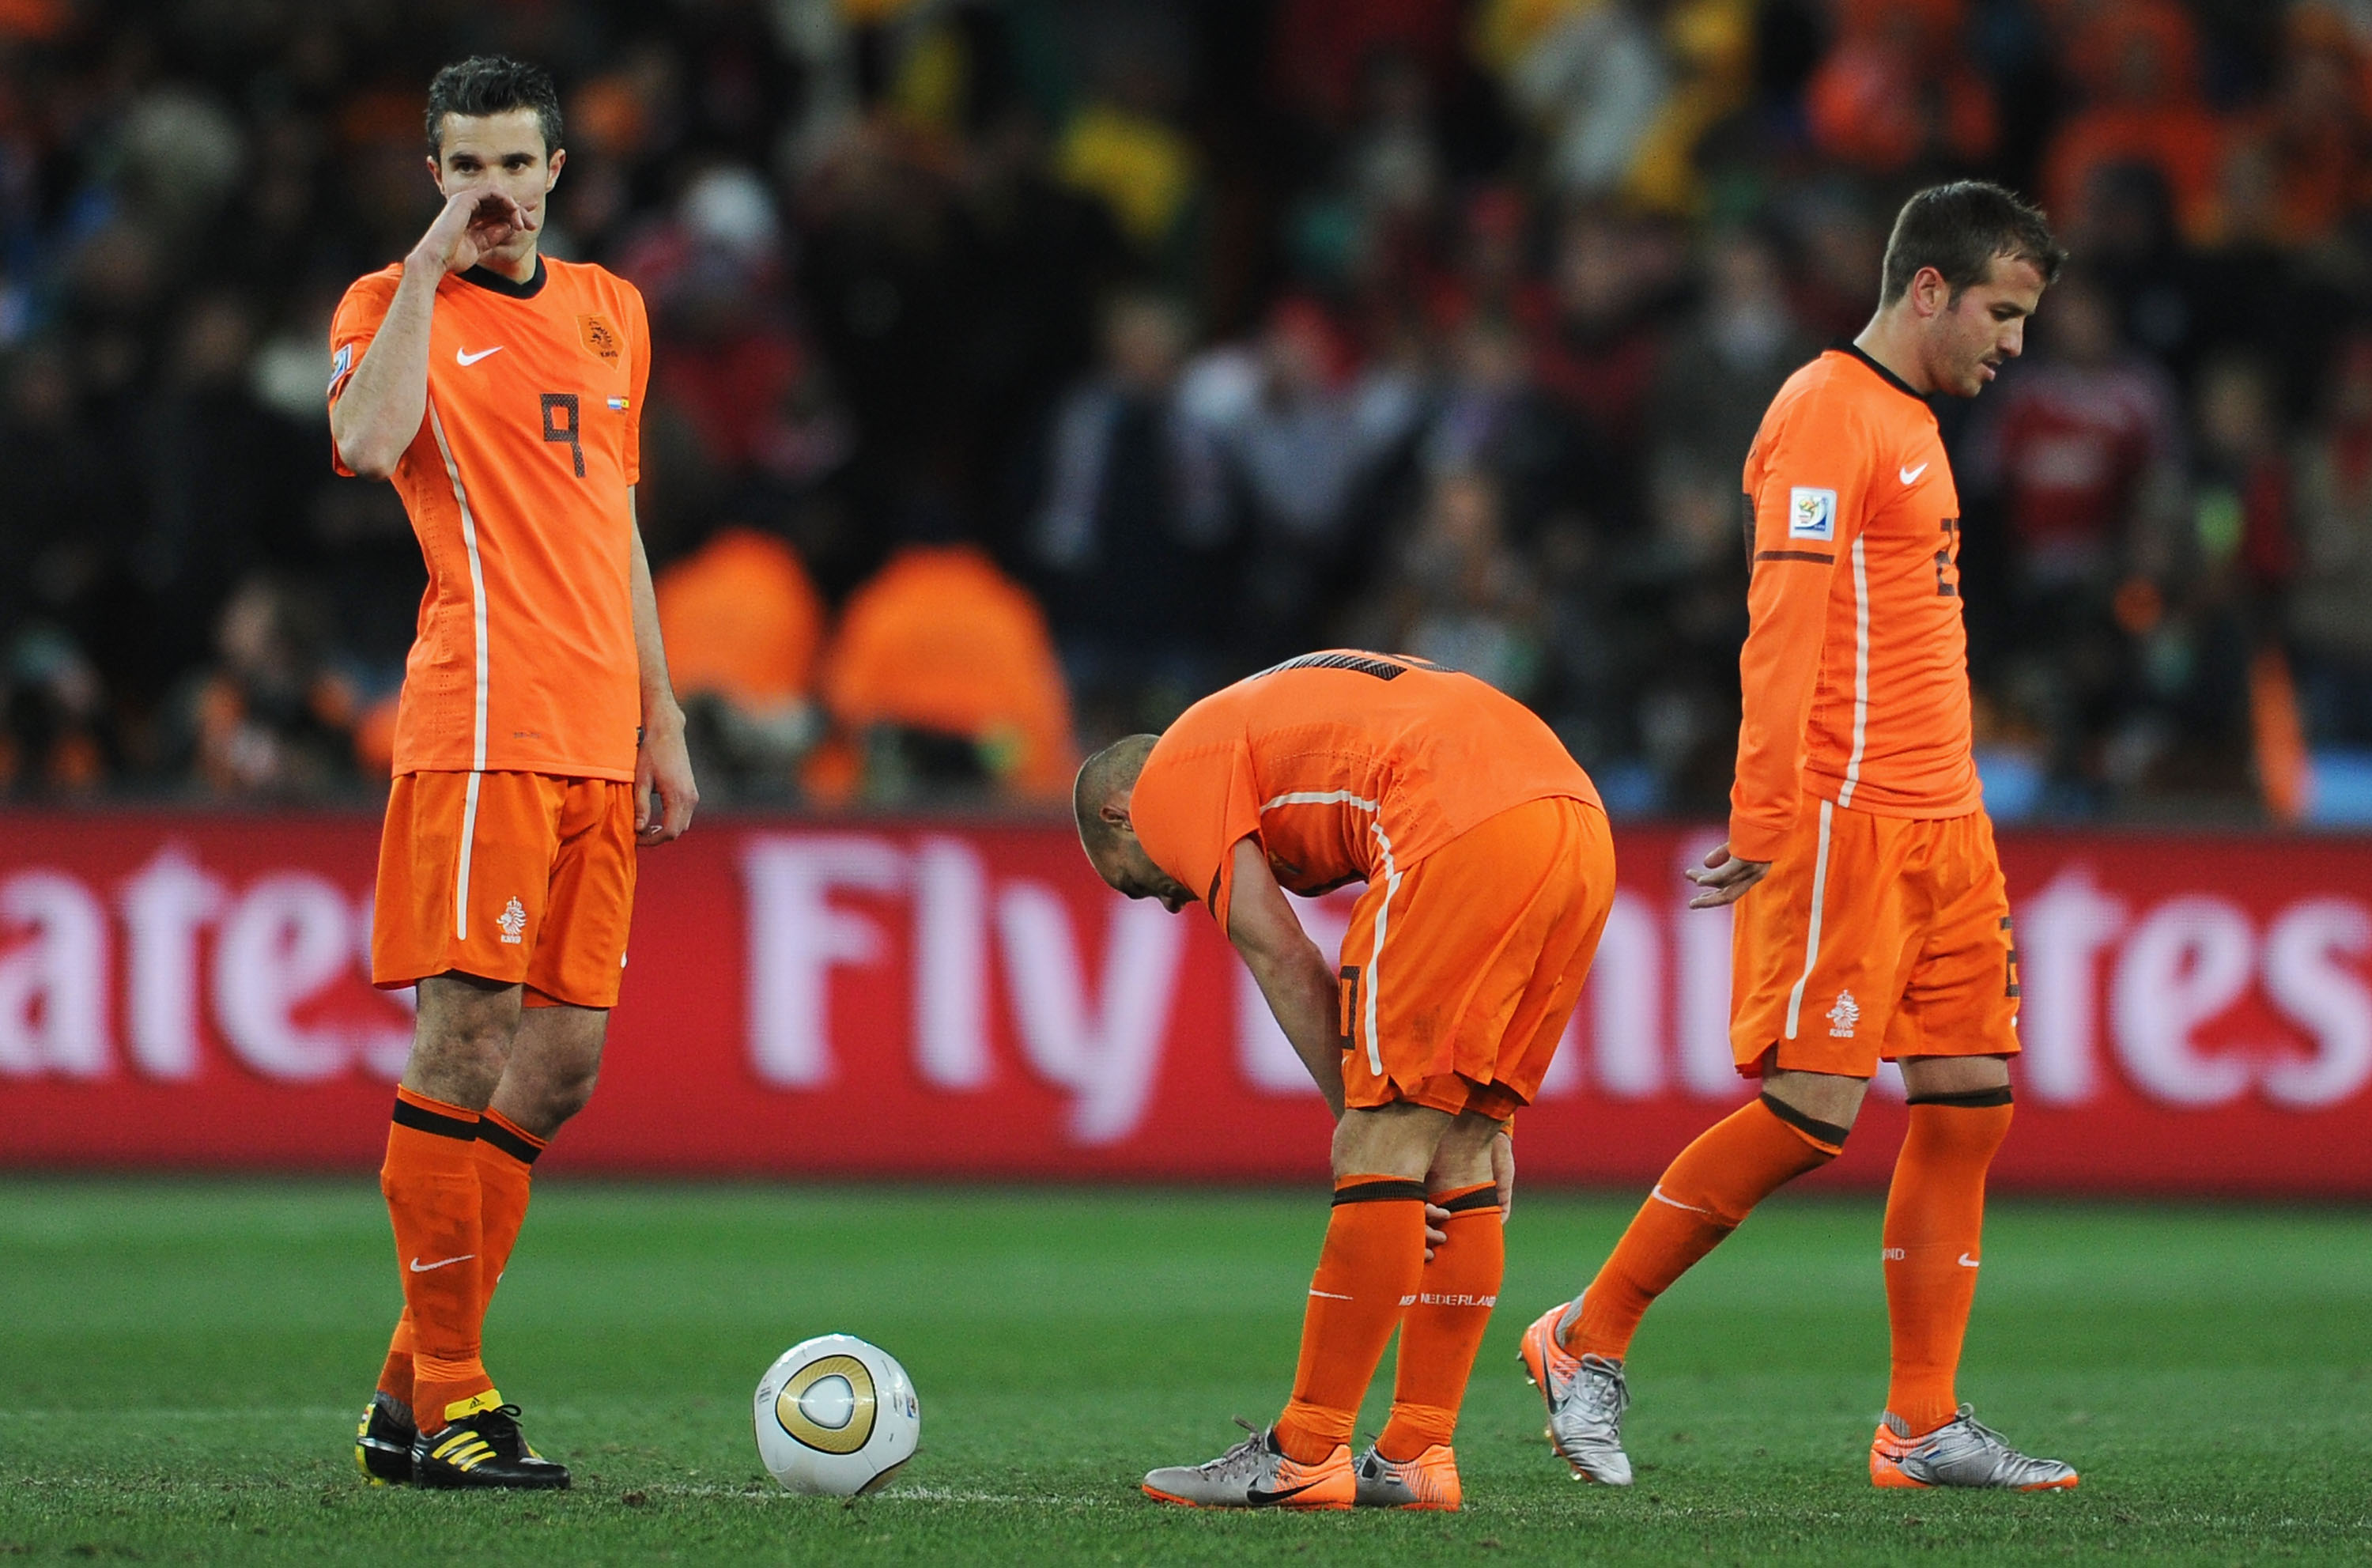 JOHANNESBURG, SOUTH AFRICA - JULY 11: Robin Van Persie, Wesley Sneijder and Rafael Van der Vaart of the Netherlands prepare to restart the match following a late Spain goal during the 2010 FIFA World Cup South Africa Final match between Netherlands and Sp